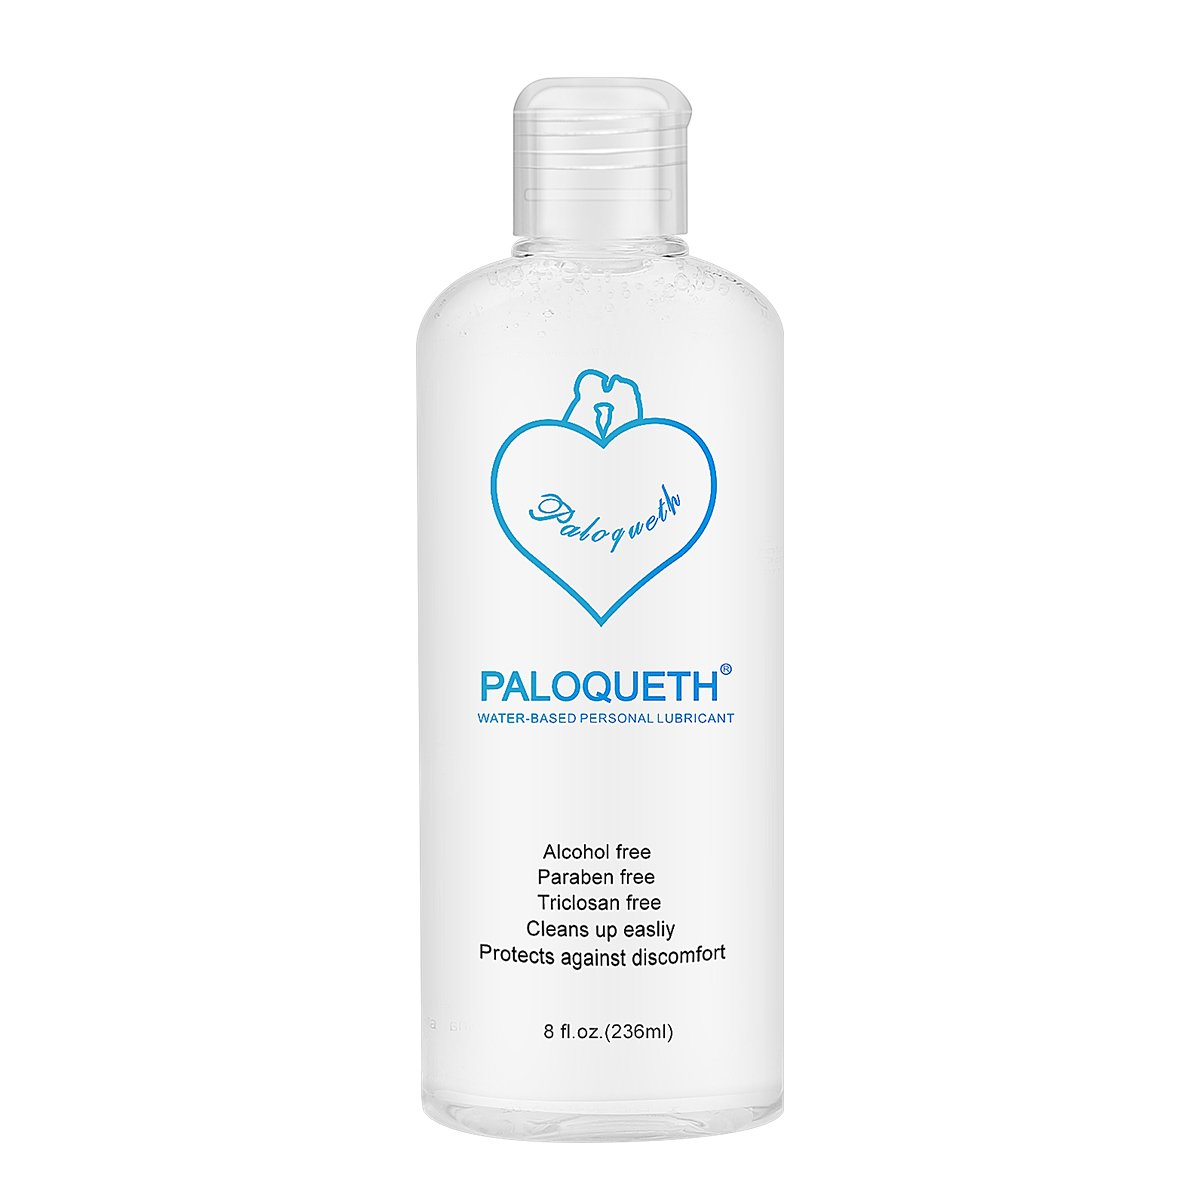 Lube For Women, PALOQUETH Personal Lubricants Water Based Lubricant For Vagina Dryness Paraben-free Hypoallergenic Super Slick Long Lasting 8 oz